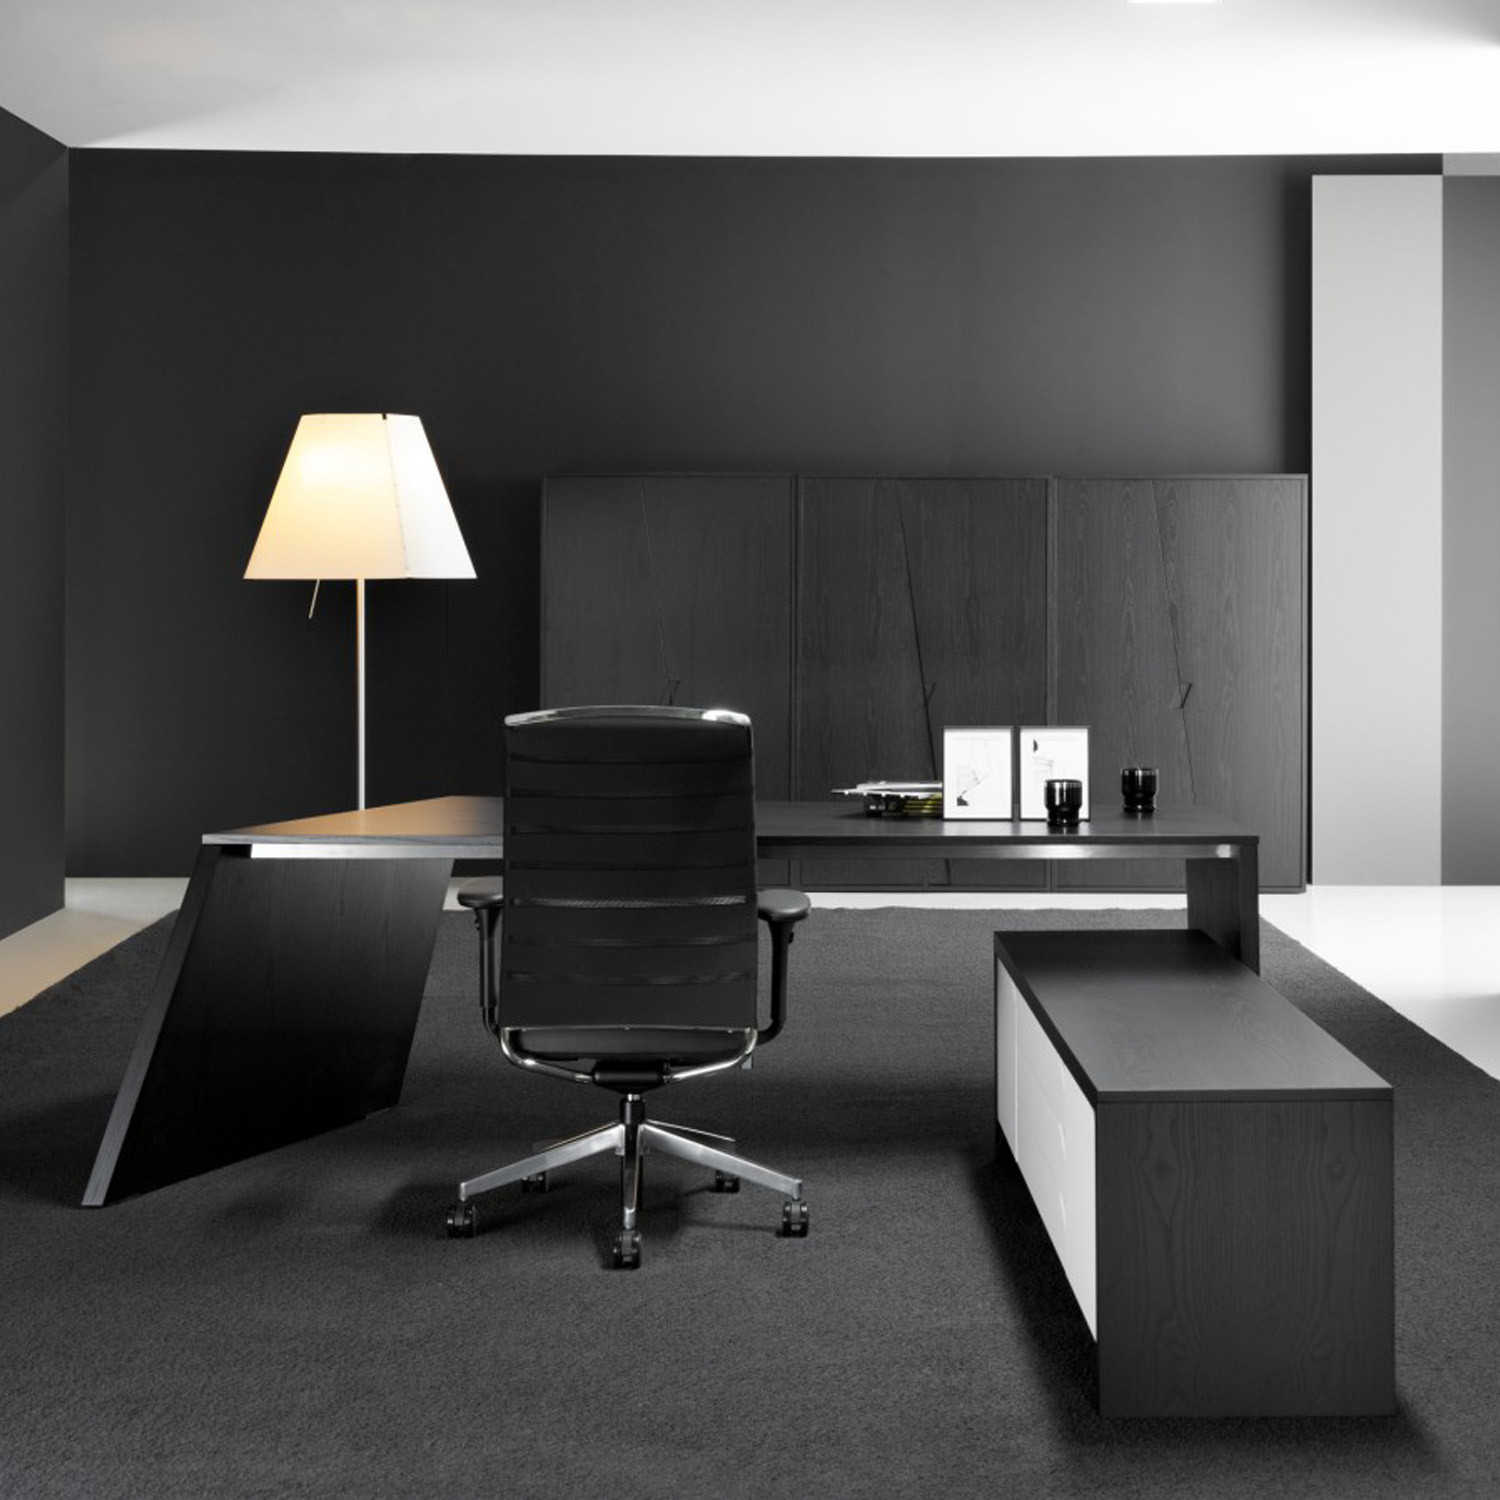 Origami Desk System Executive Furniture Apres Furniture